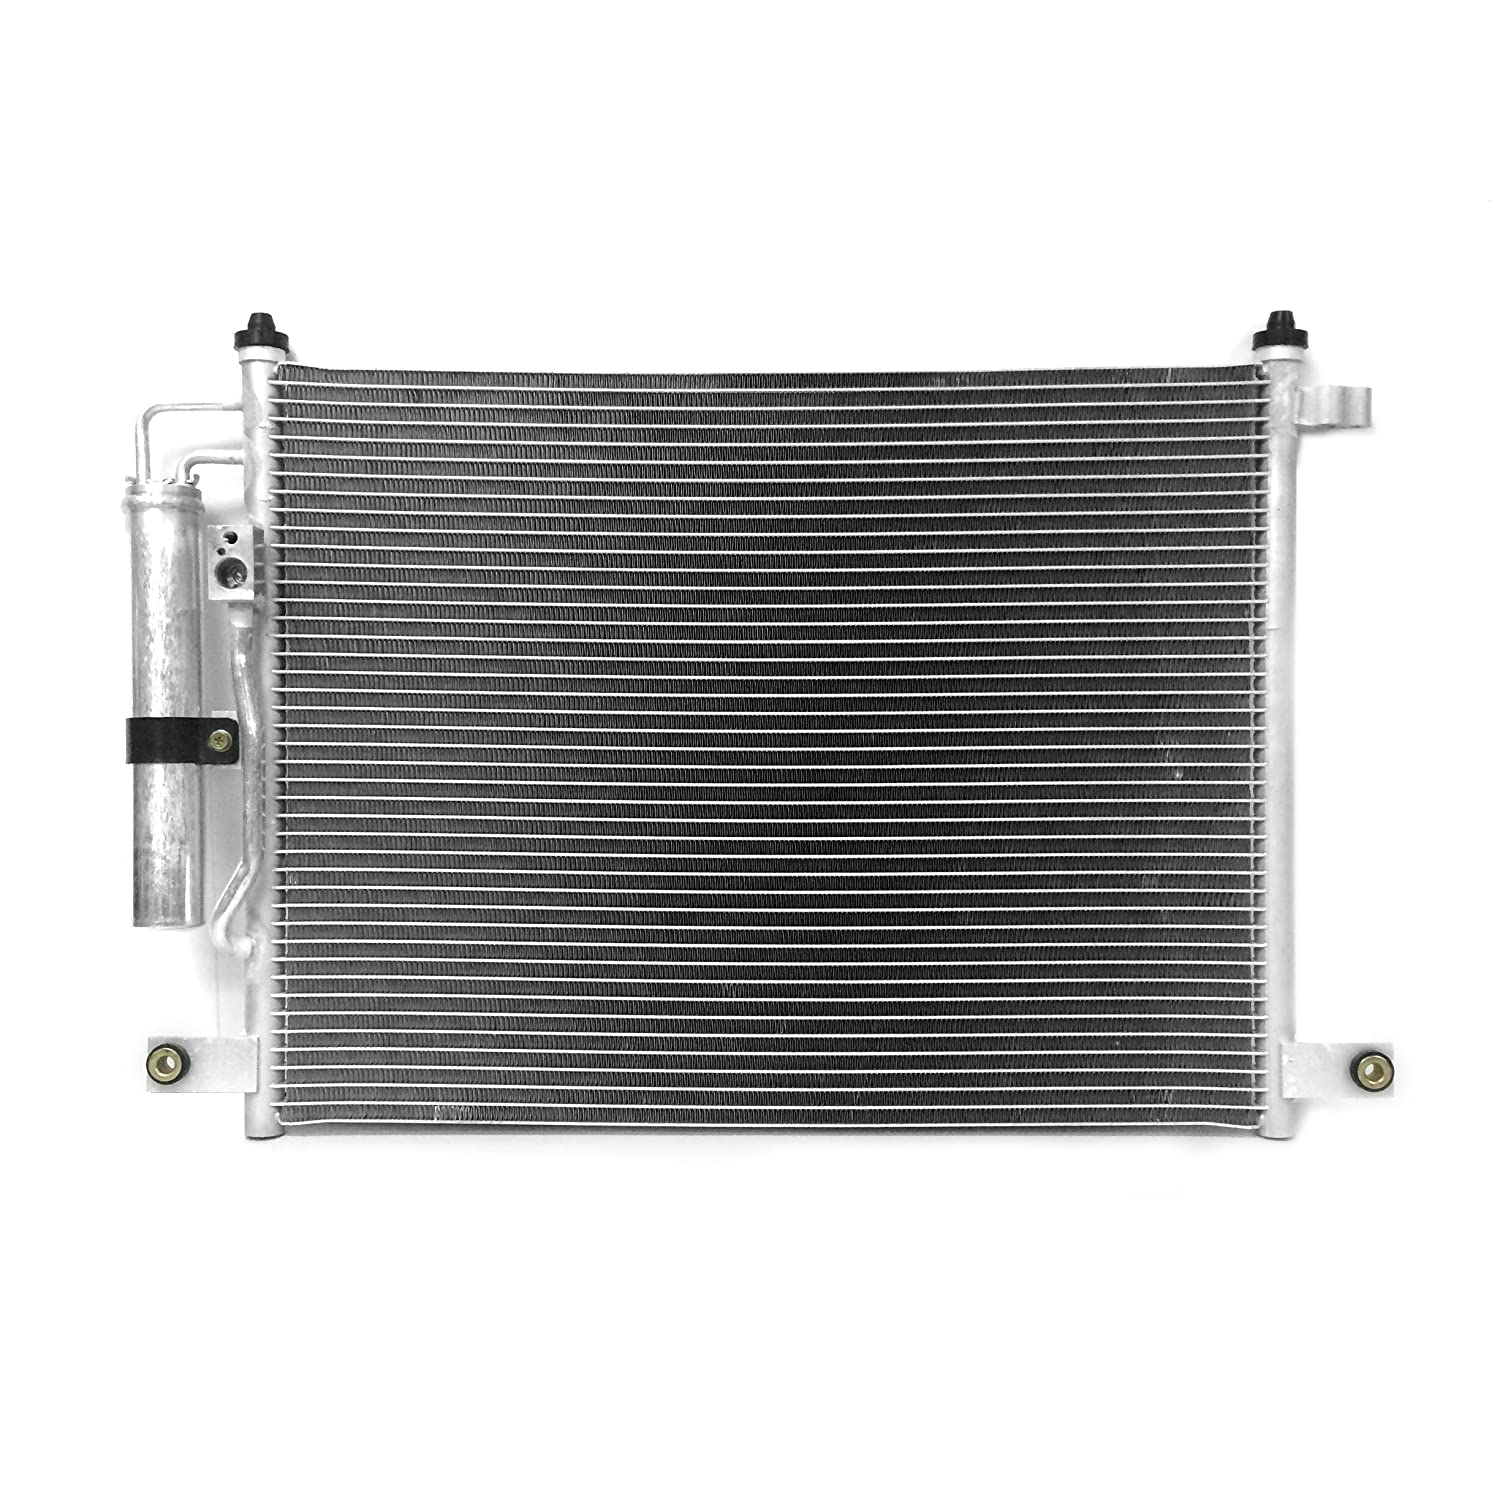 COG212 3240 AC A//C Condenser for Chevrolet Suzuki Fits Aveo Swift Wave 1.6 L4